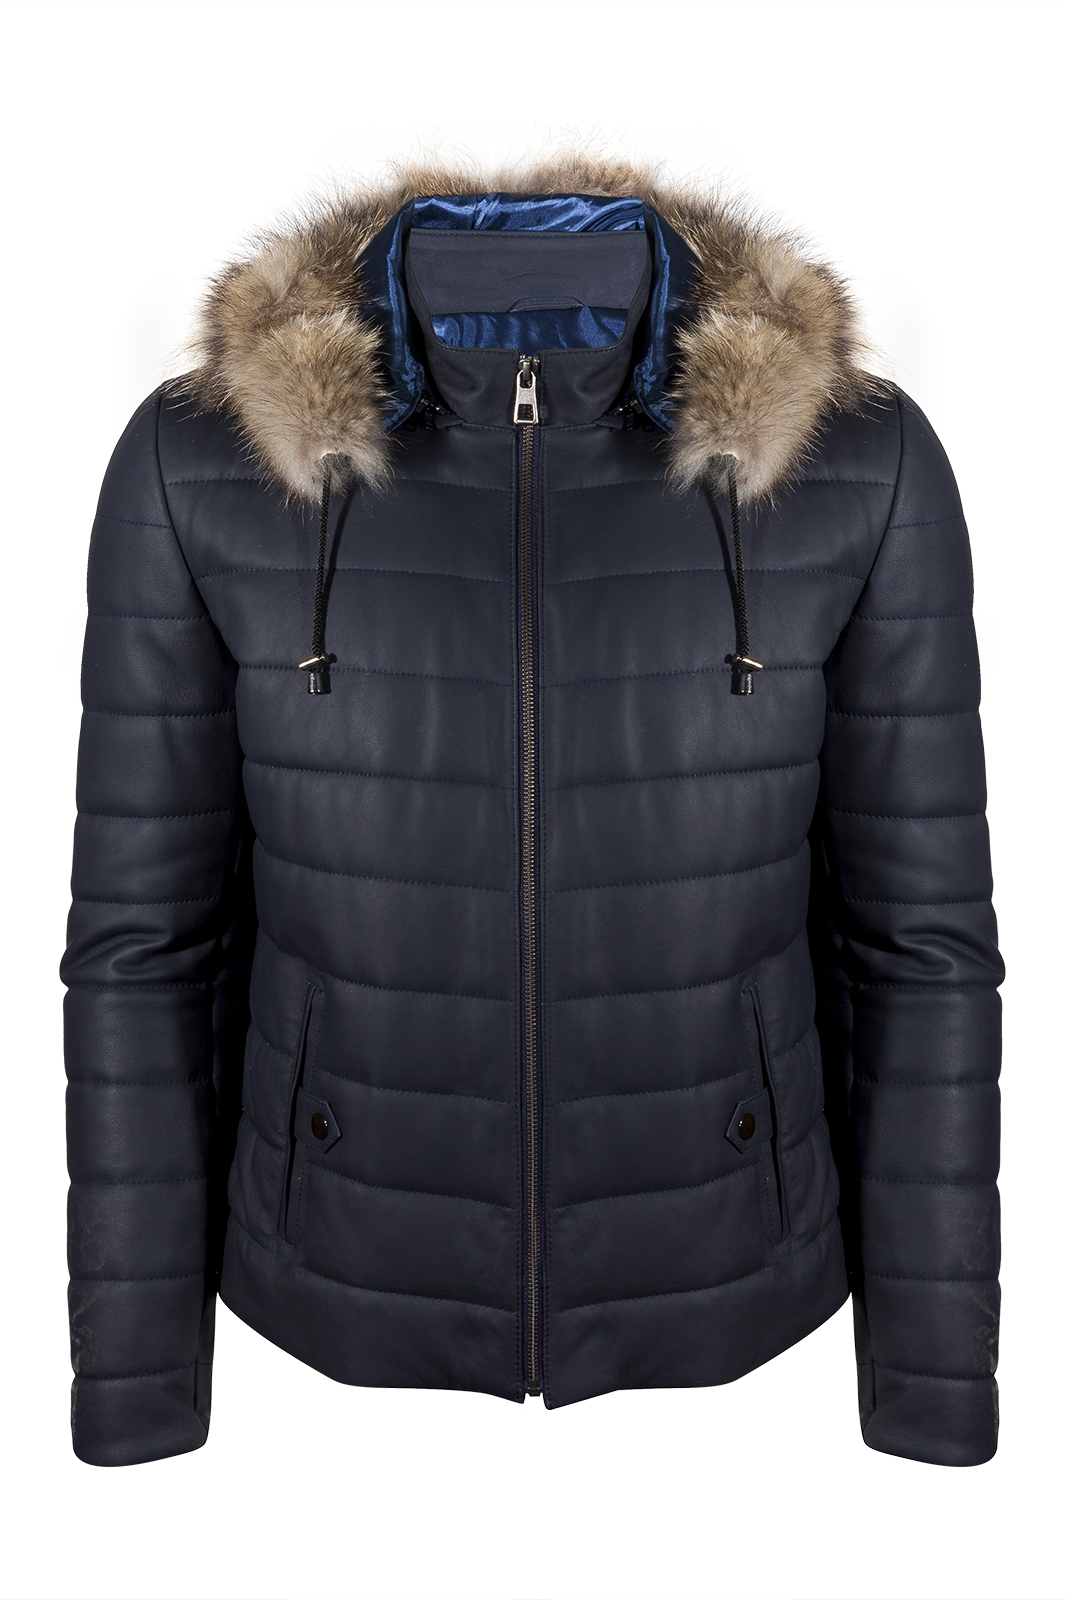 IPAM8488K Navy Blue Fur Leather Jacket